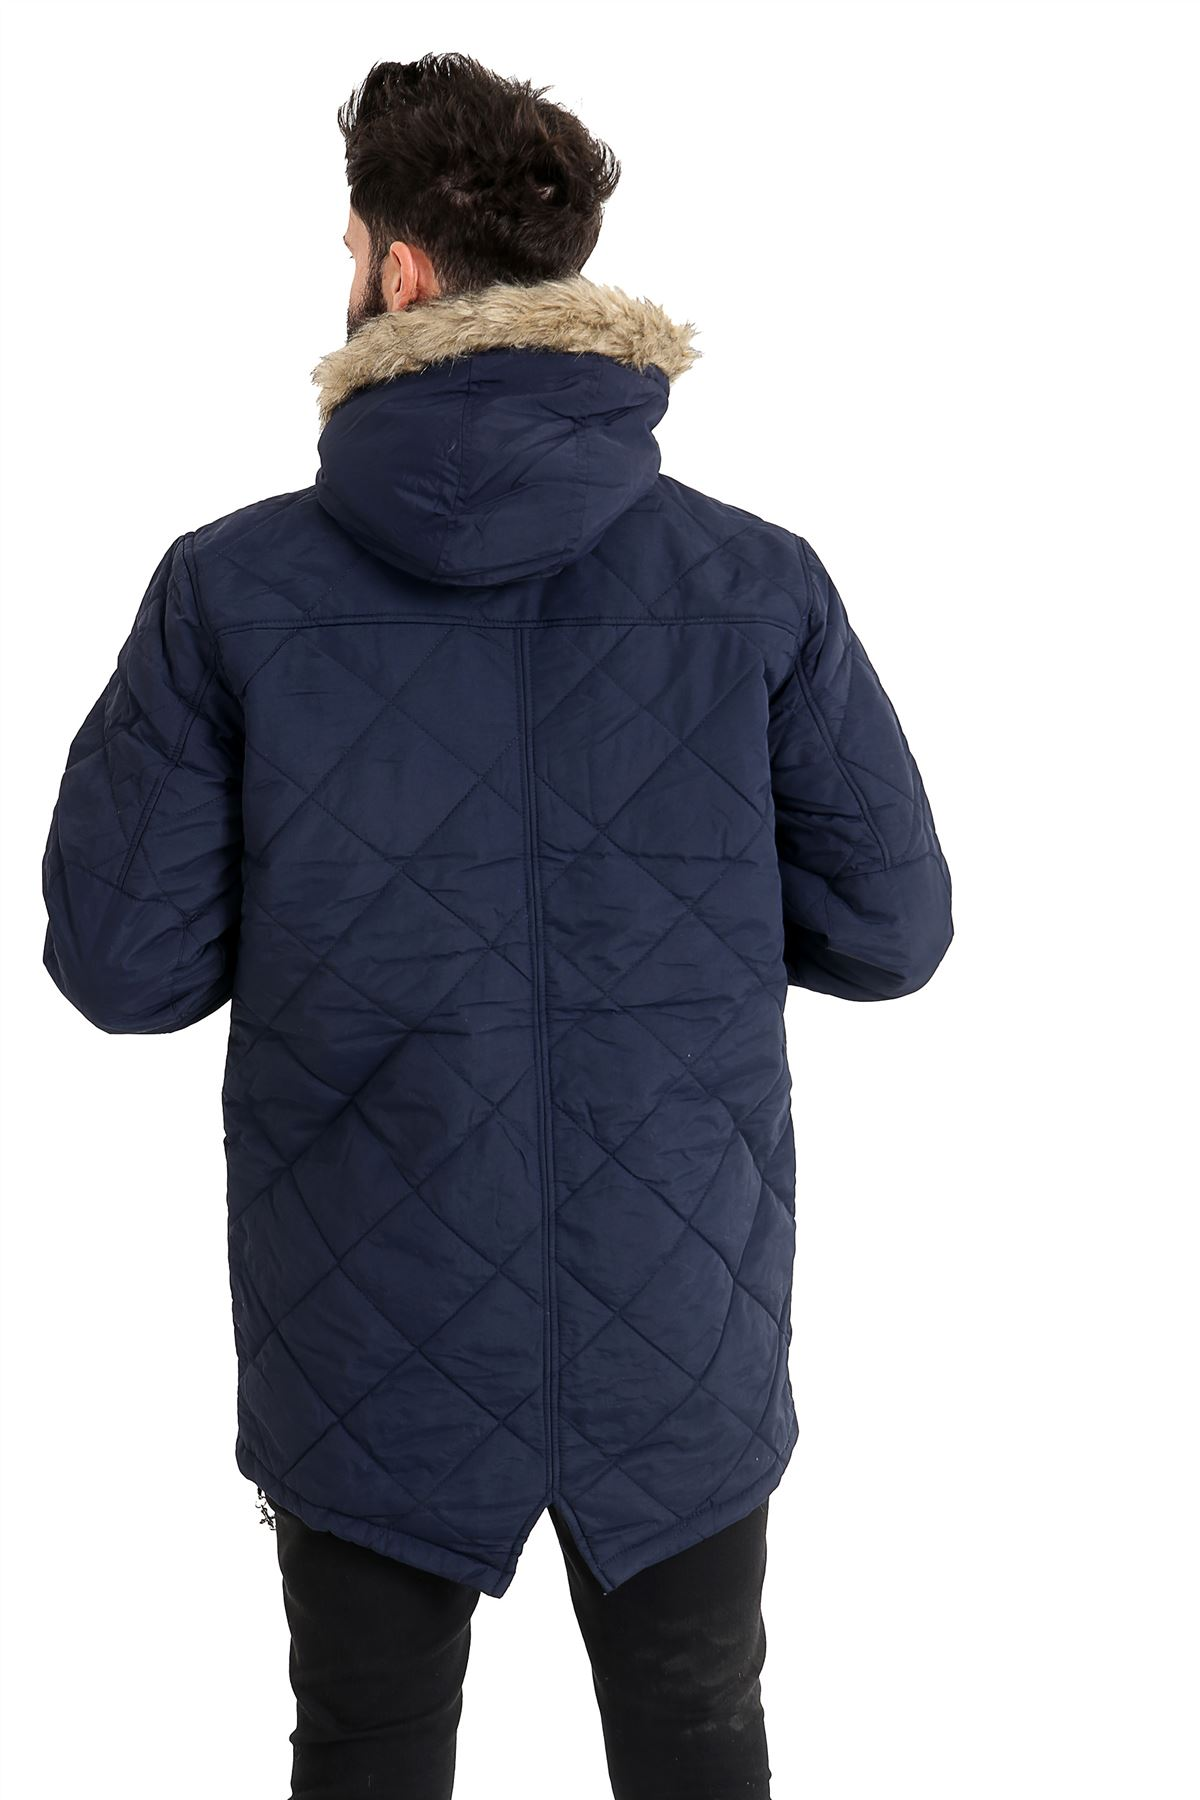 Mens-Quilted-Parker-Parka-Coat-Jacket-Fur-Lined-Hood-Warm-Winter-Thick-Padded thumbnail 7